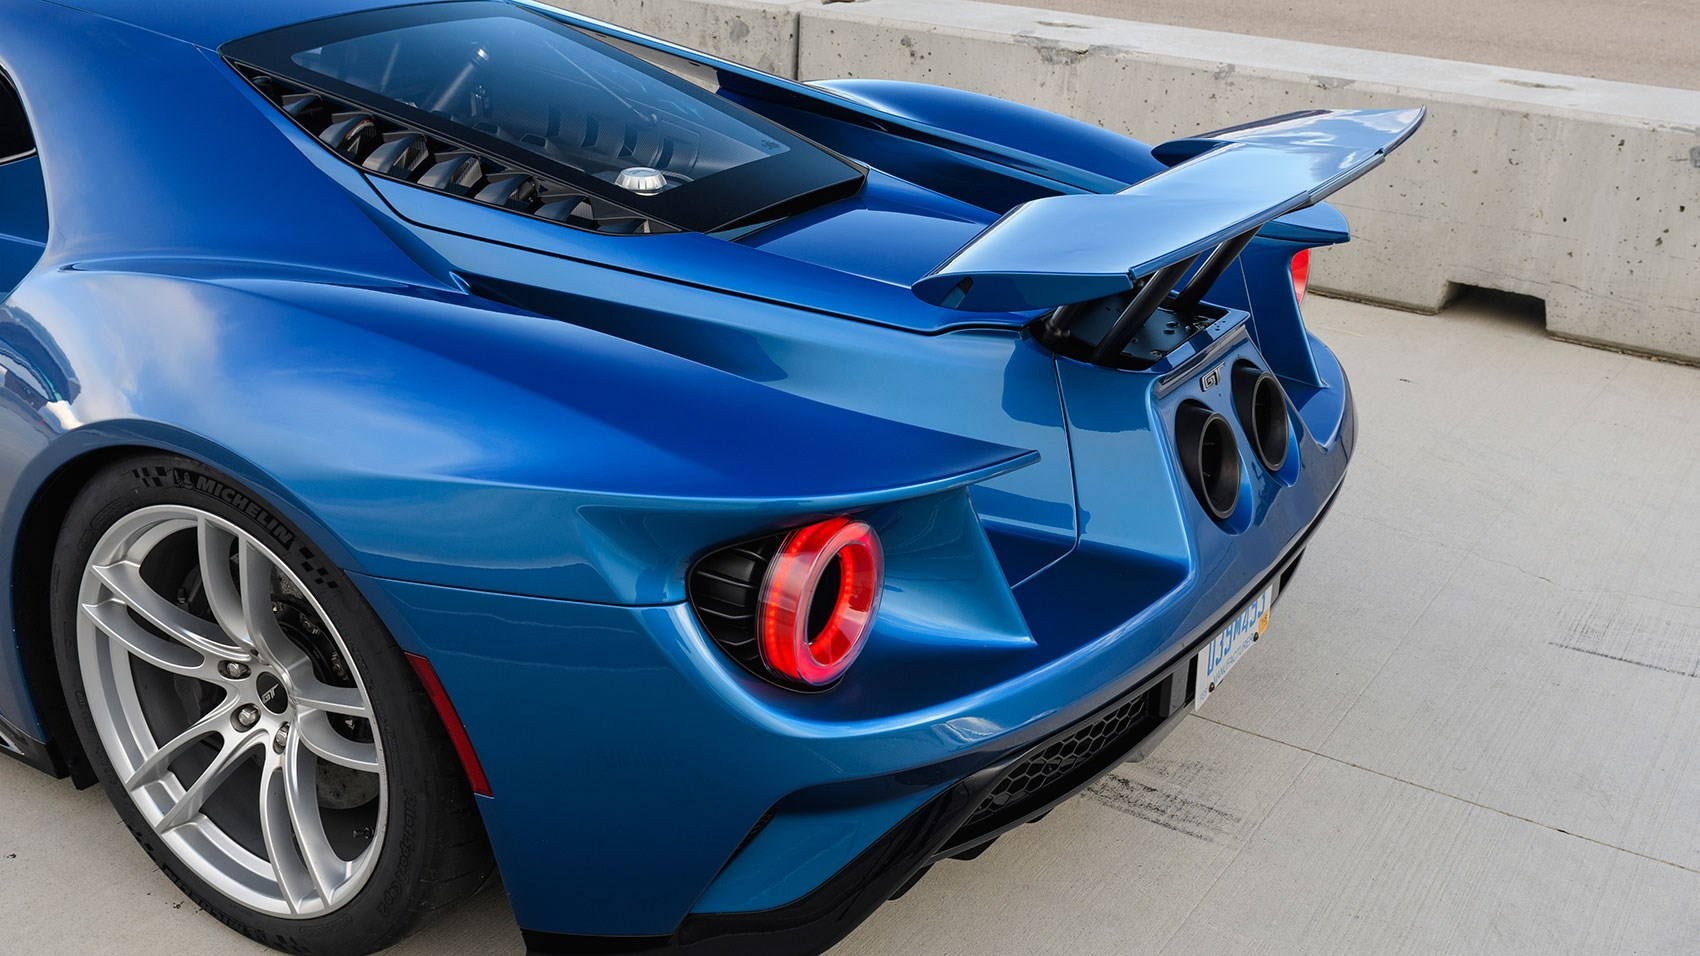 Ford Gt Made Of Carbonfibre And Aluminium Rear Air Brake Pops Up For High Speed Work